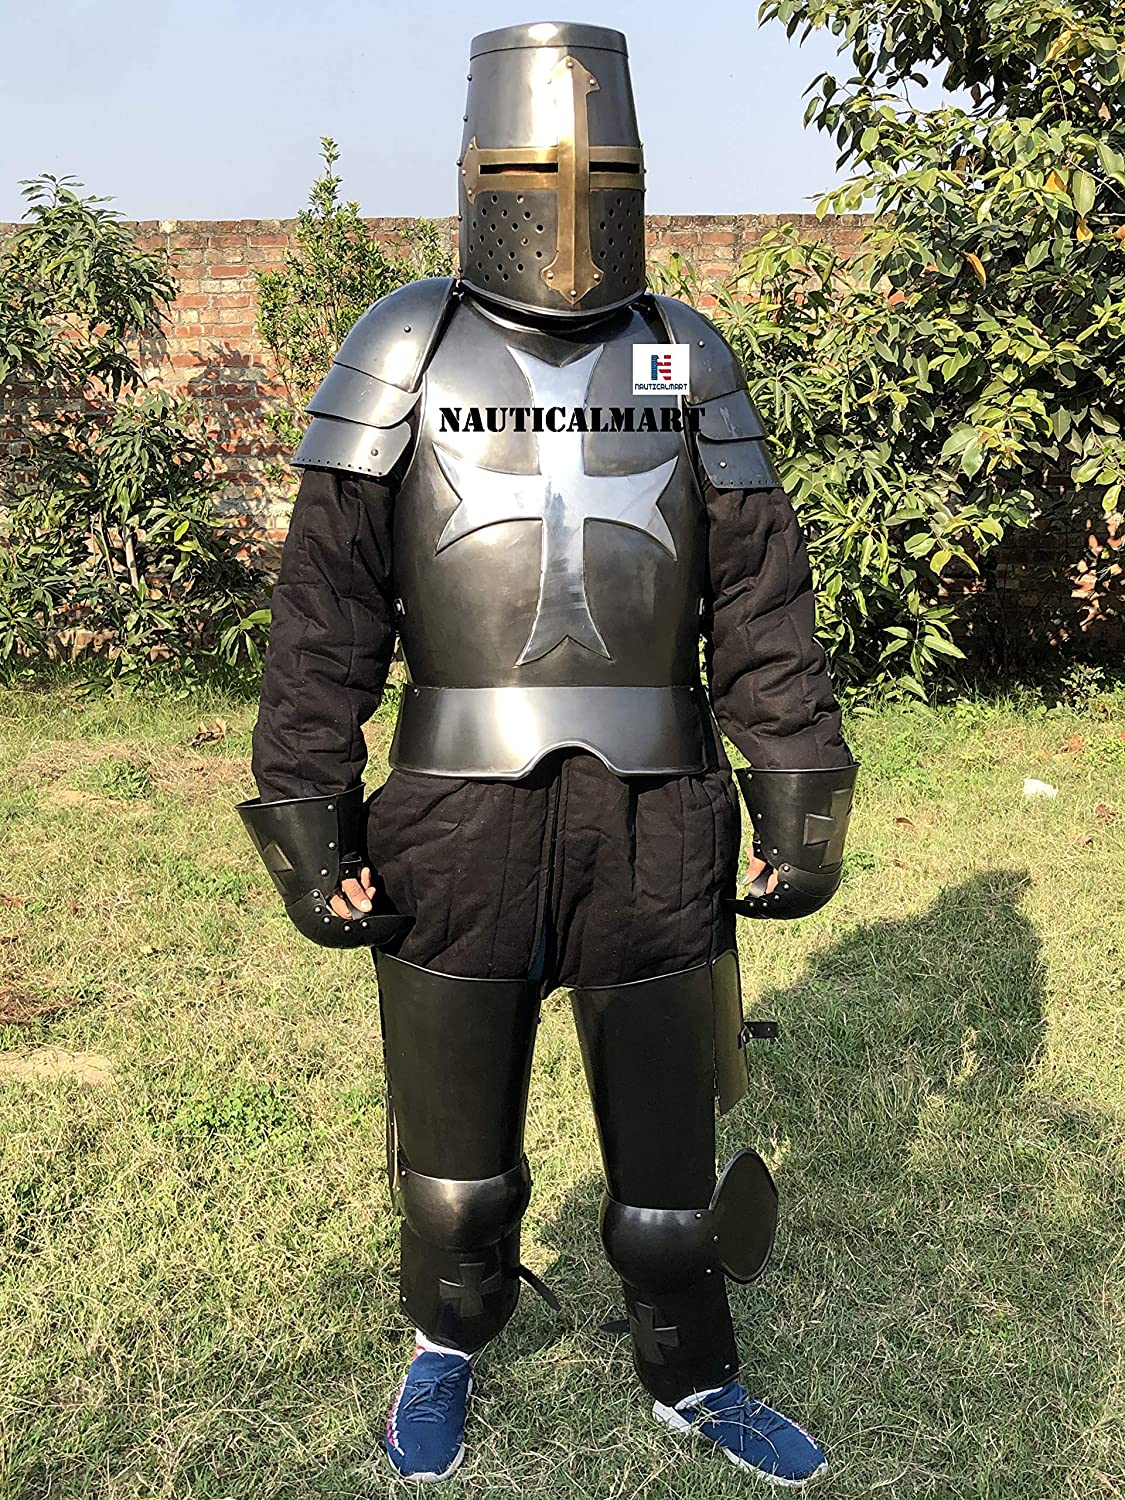 Max 61% OFF A surprise price is realized Nautical-Mart Medieval Wearable Knight Crusader C Armour of Suit